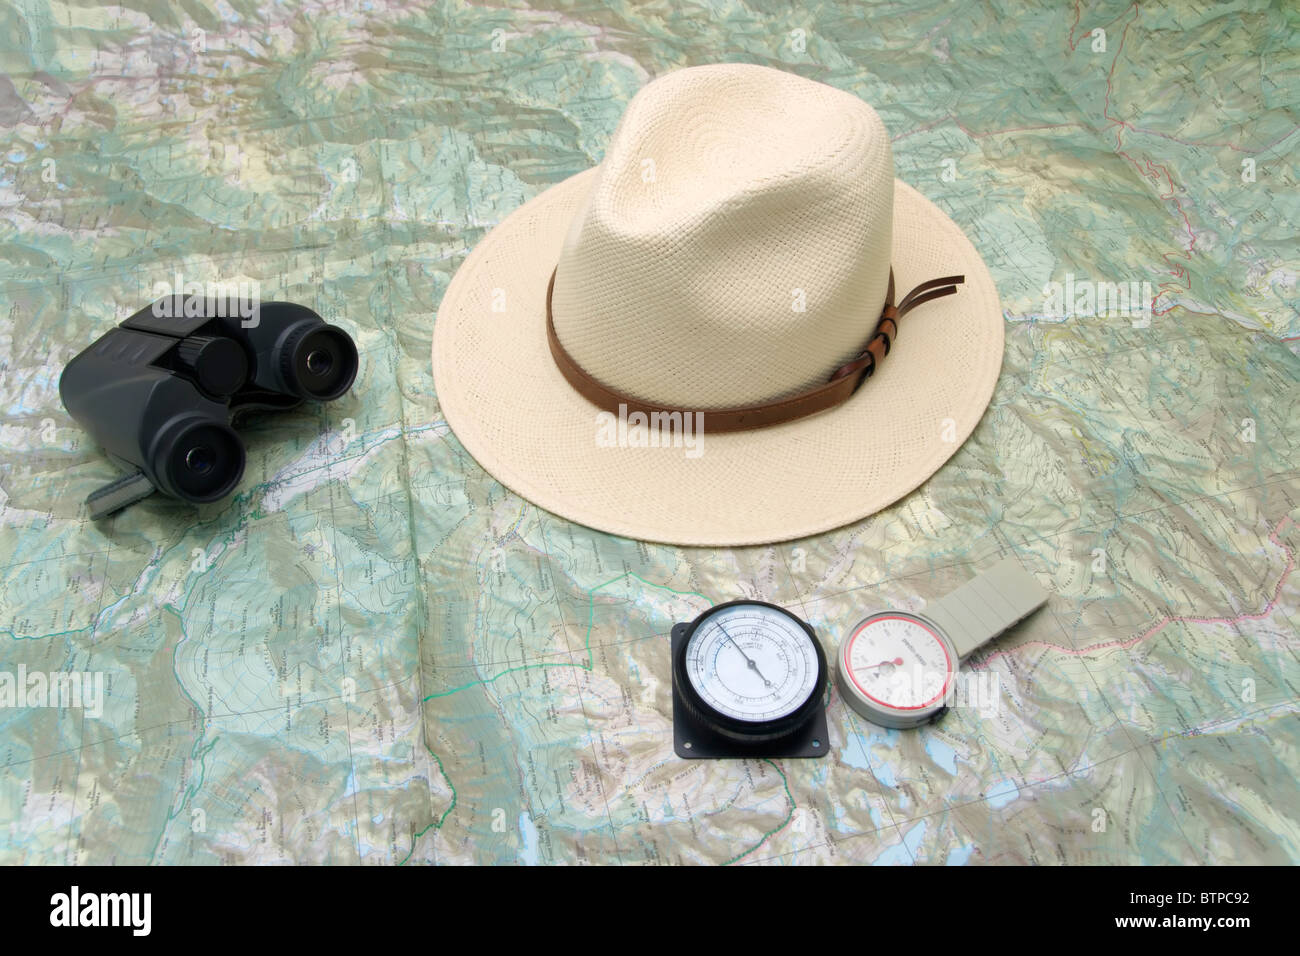 Planning a trip to the mountain with map, pedometer, altimeter, binoculars and hat - Stock Image